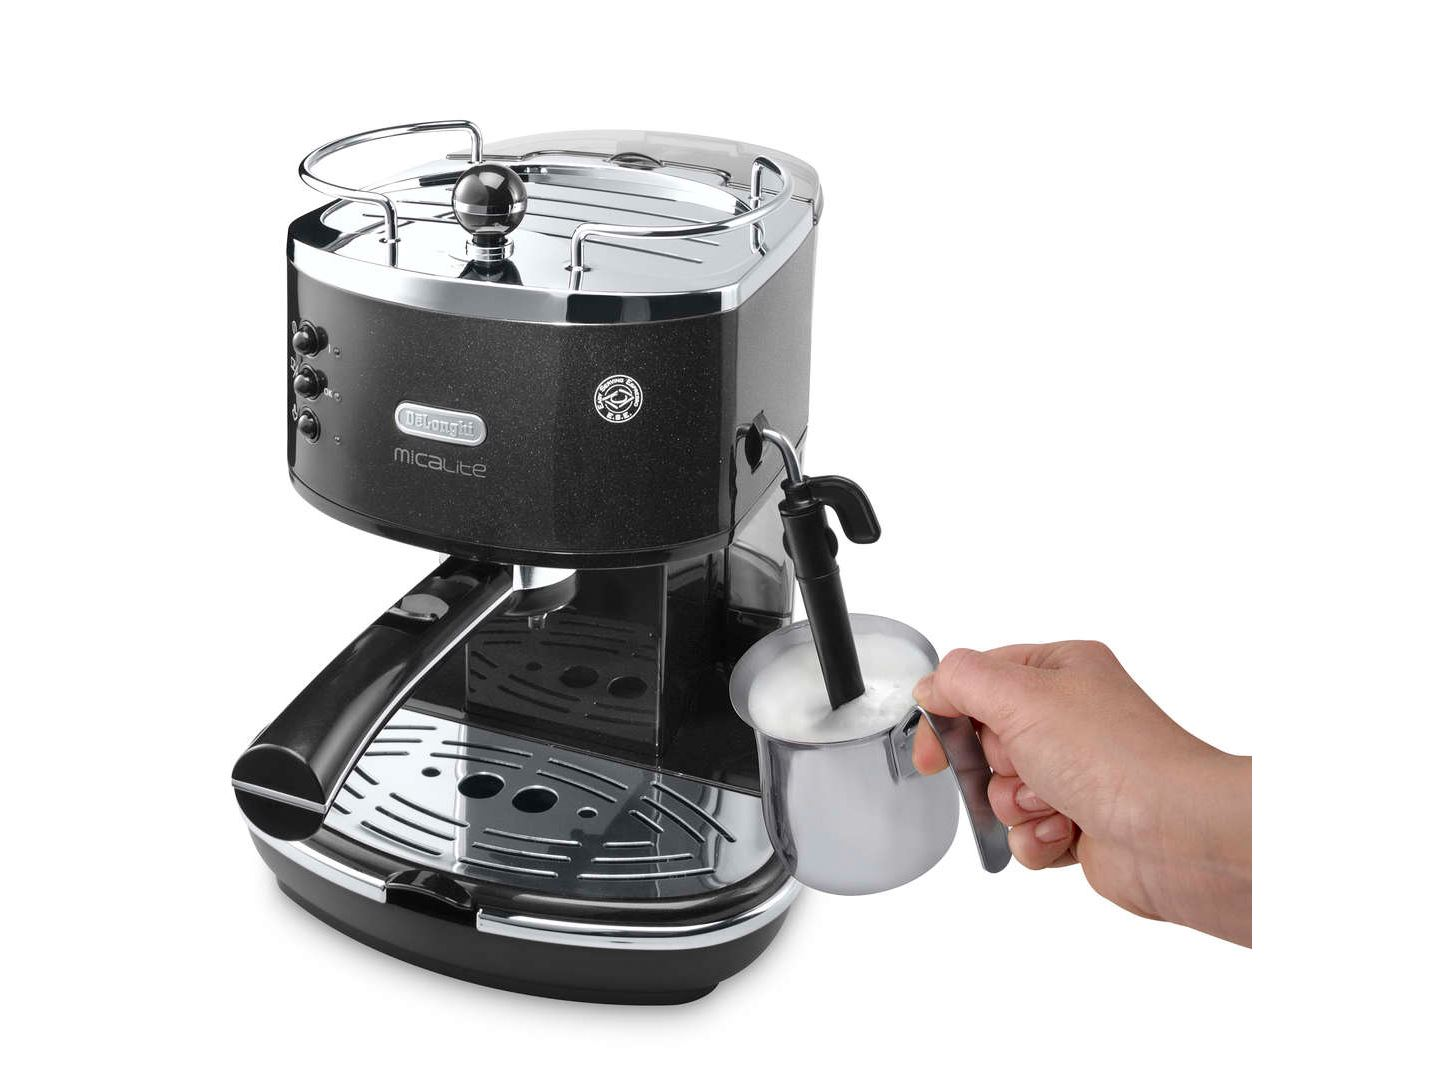 Delonghi Filter Coffee Maker : Delonghi ECOM310 Icona Micalite 2 Cup Espresso Filter Coffee Maker Machine NEW eBay